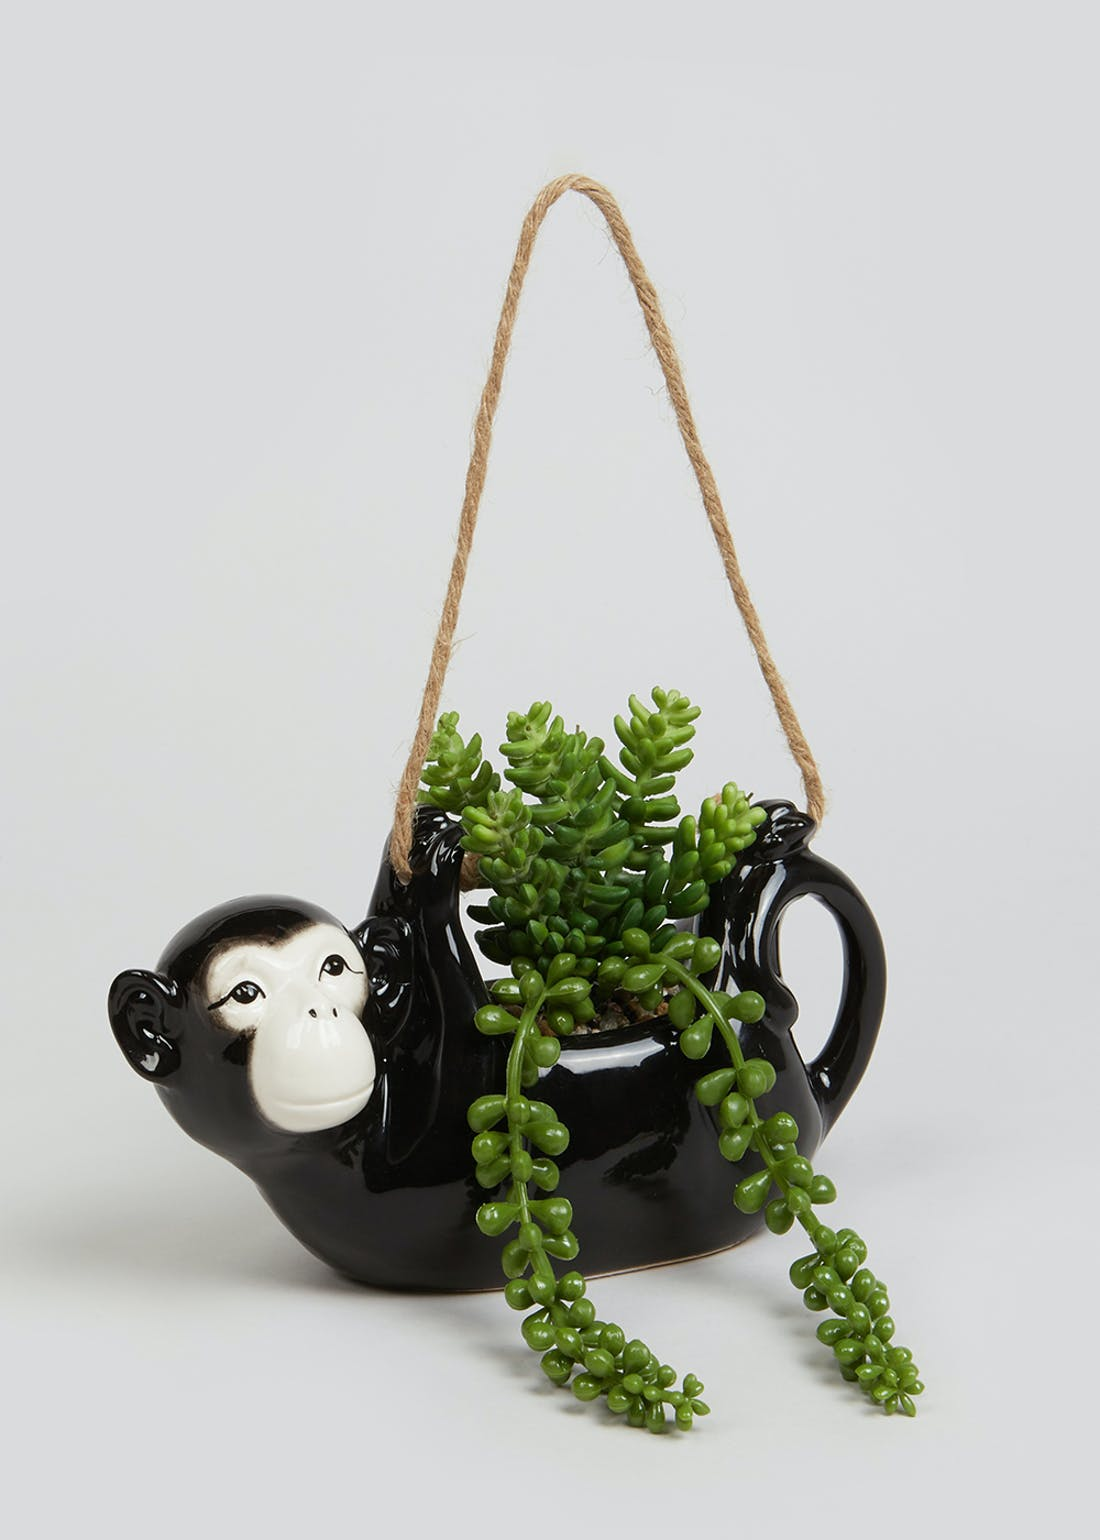 Trailing Succulent in Hanging Monkey Planter (30cm x 22cm x 9cm)